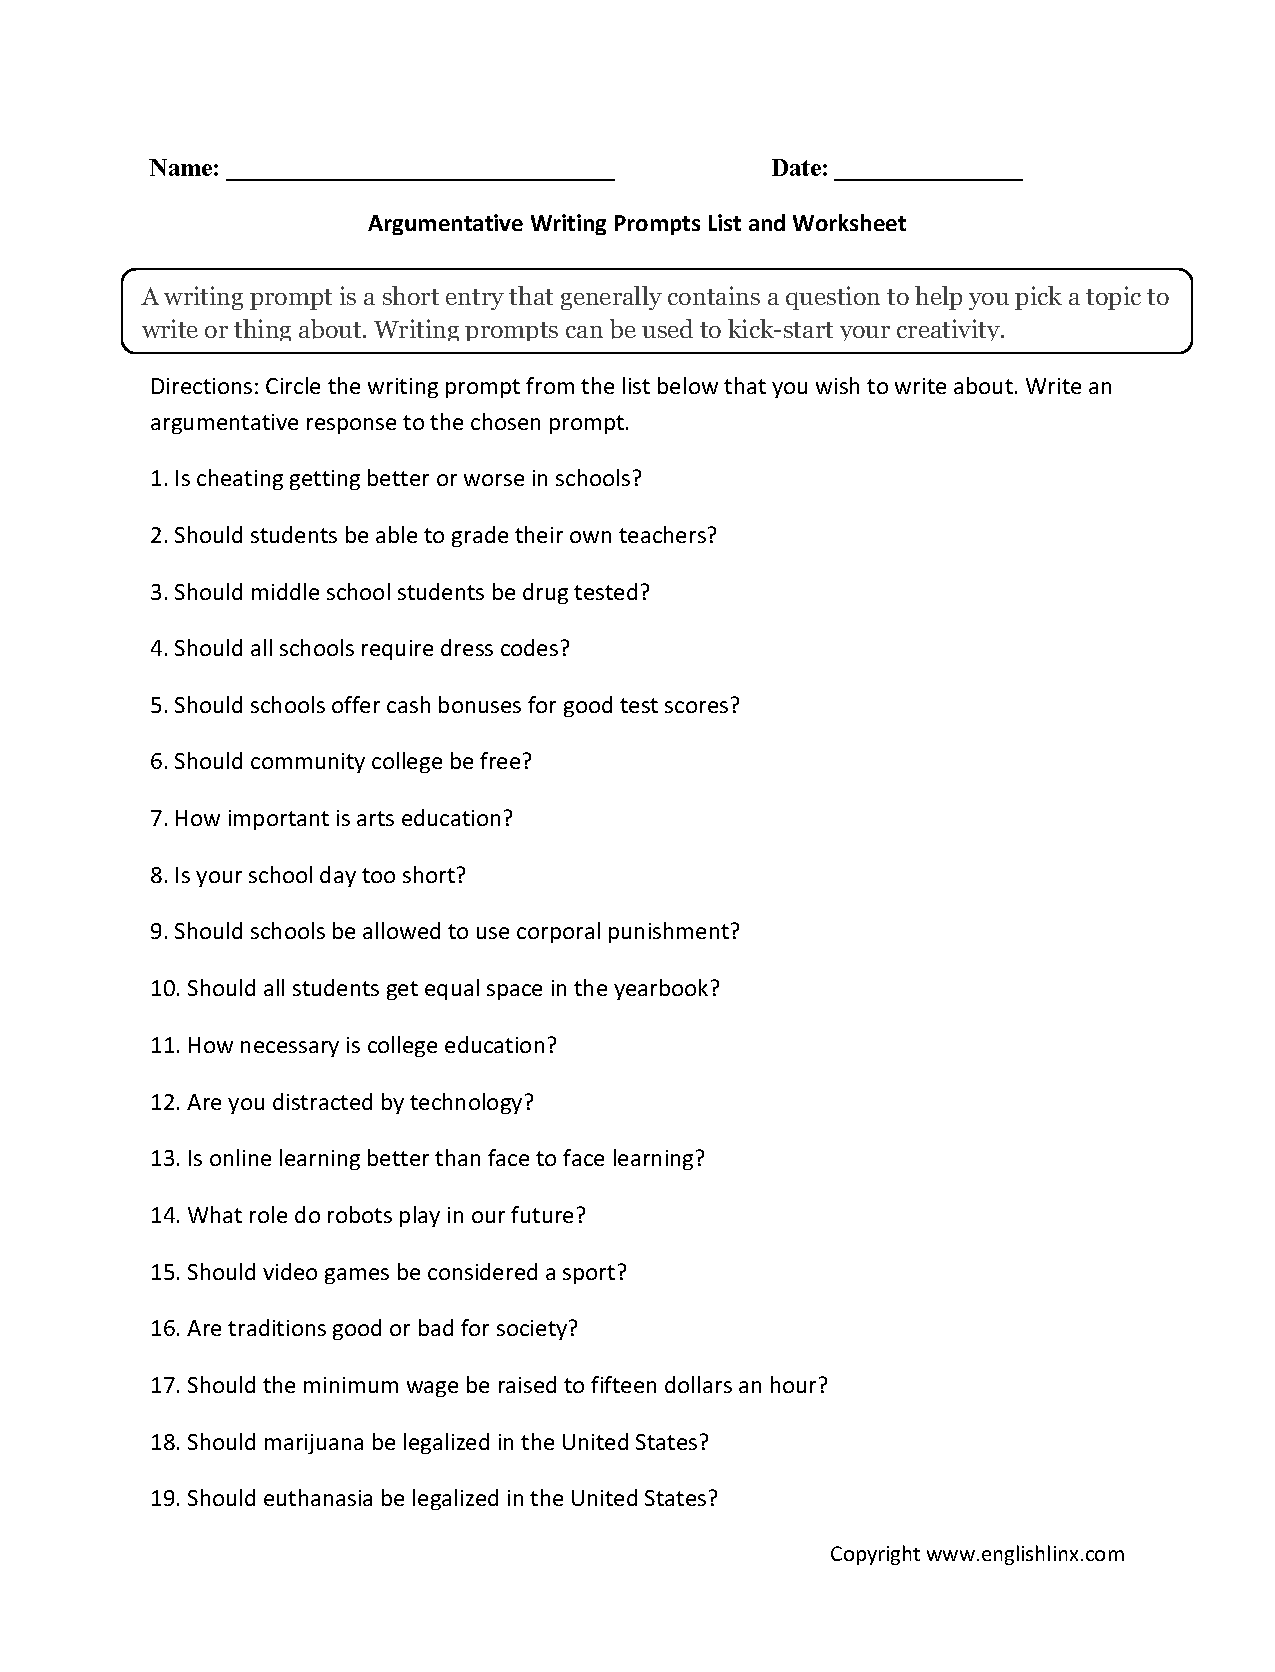 Worksheets 7th Grade Writing Worksheets writing prompts worksheets argumentative list worksheets